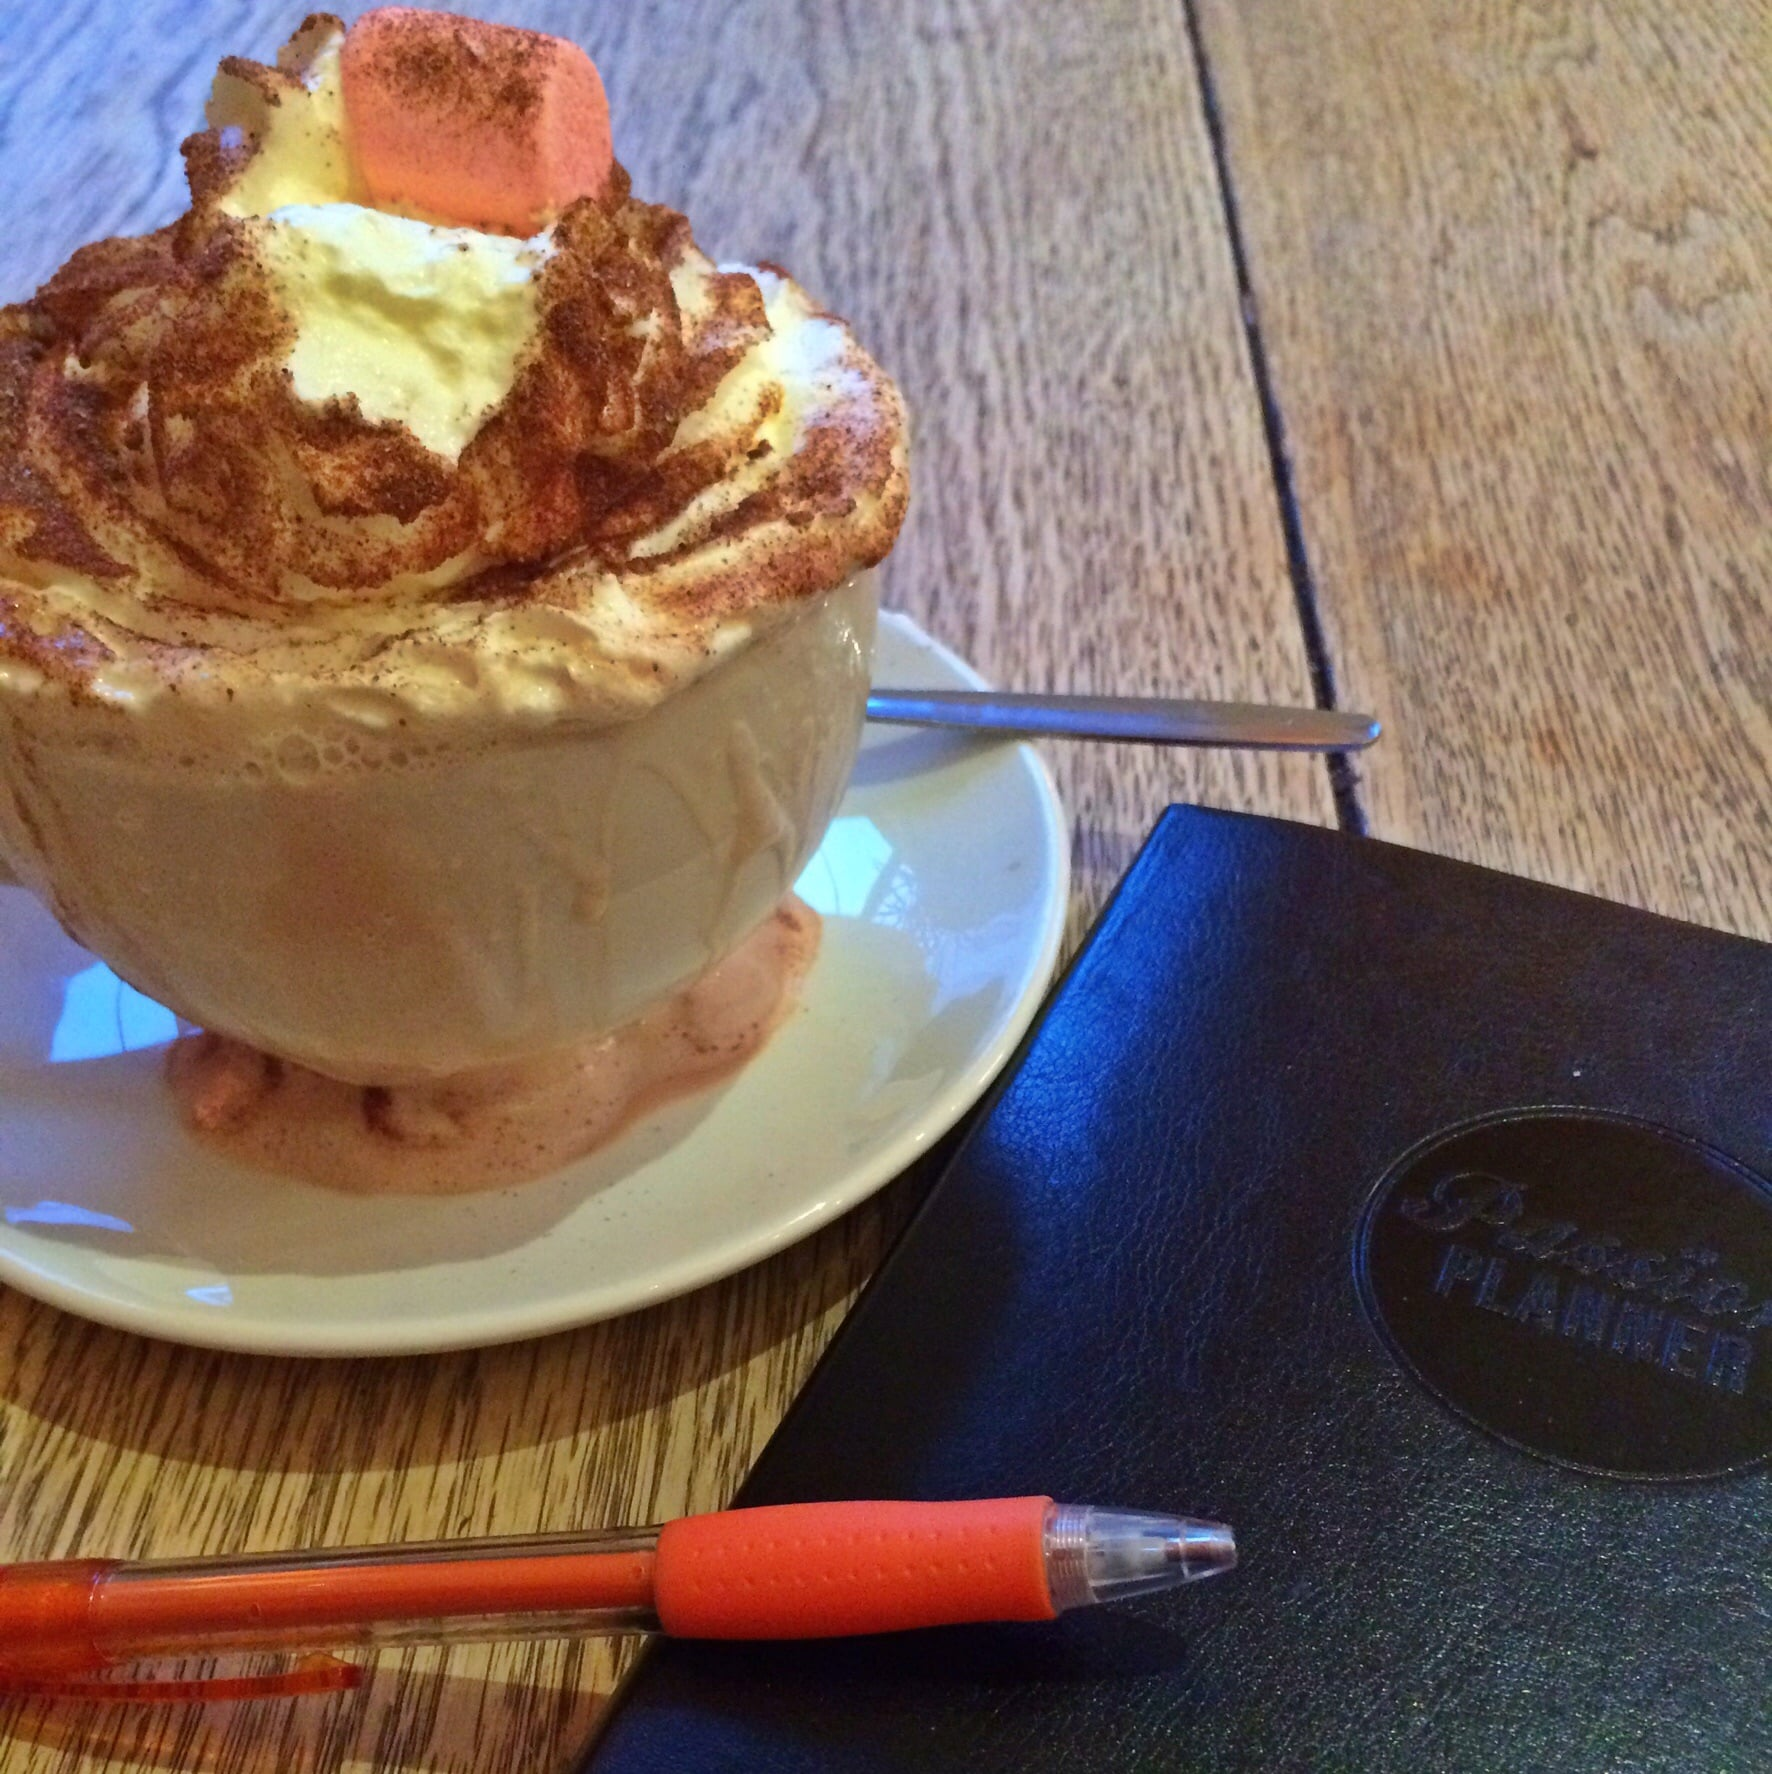 The Mallow Delight at The Elephant House Cafe in Edinburgh's Old Town.